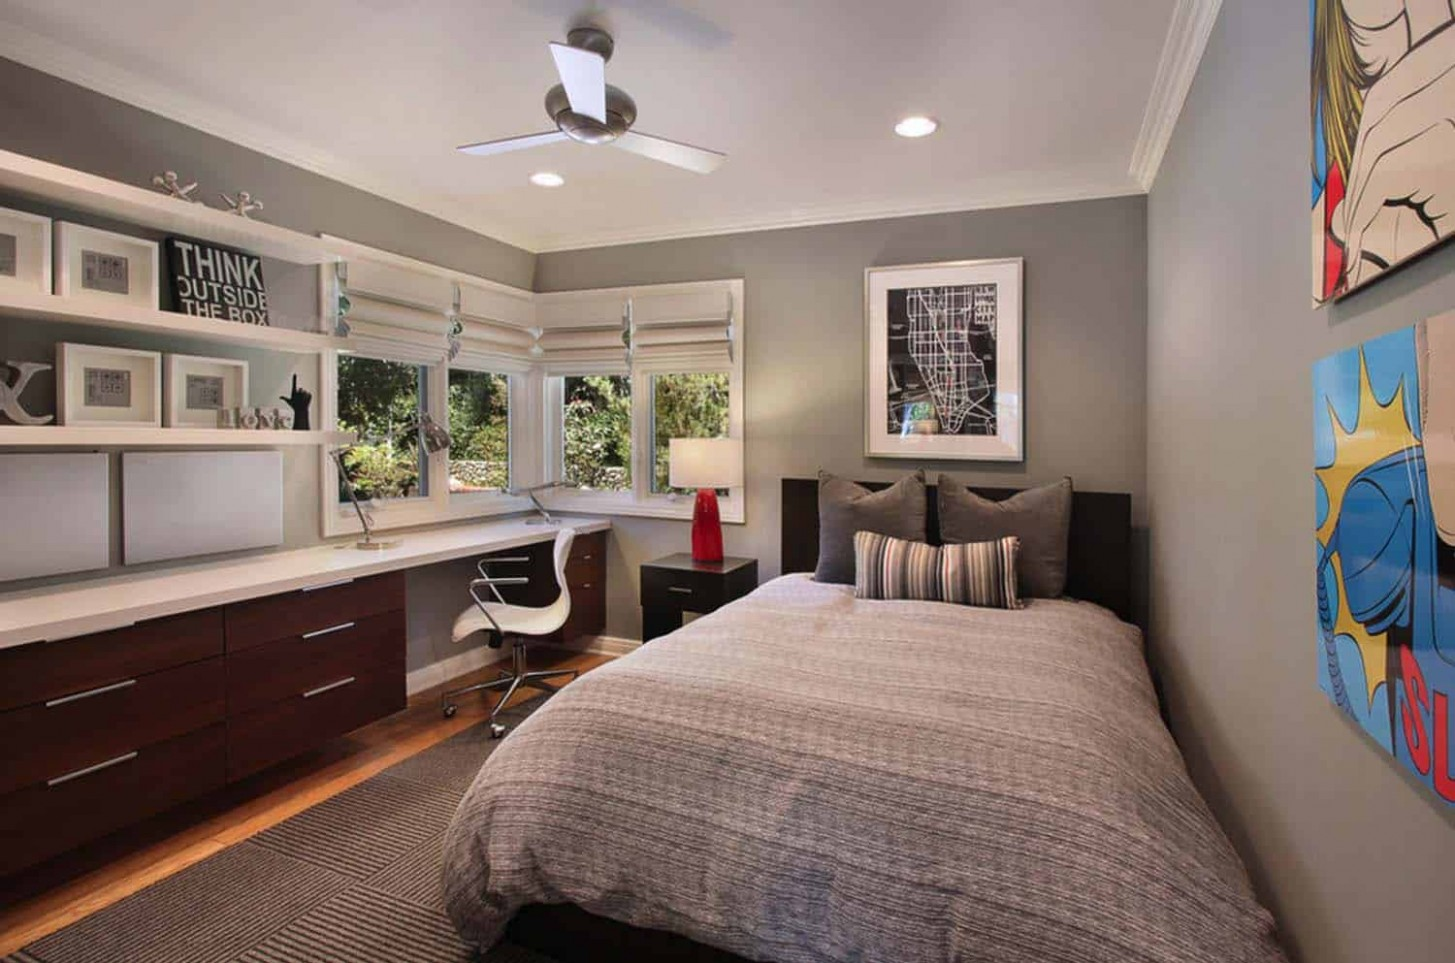 9 Fabulous ideas for a home office in the bedroom - Home Office Ideas Bedroom